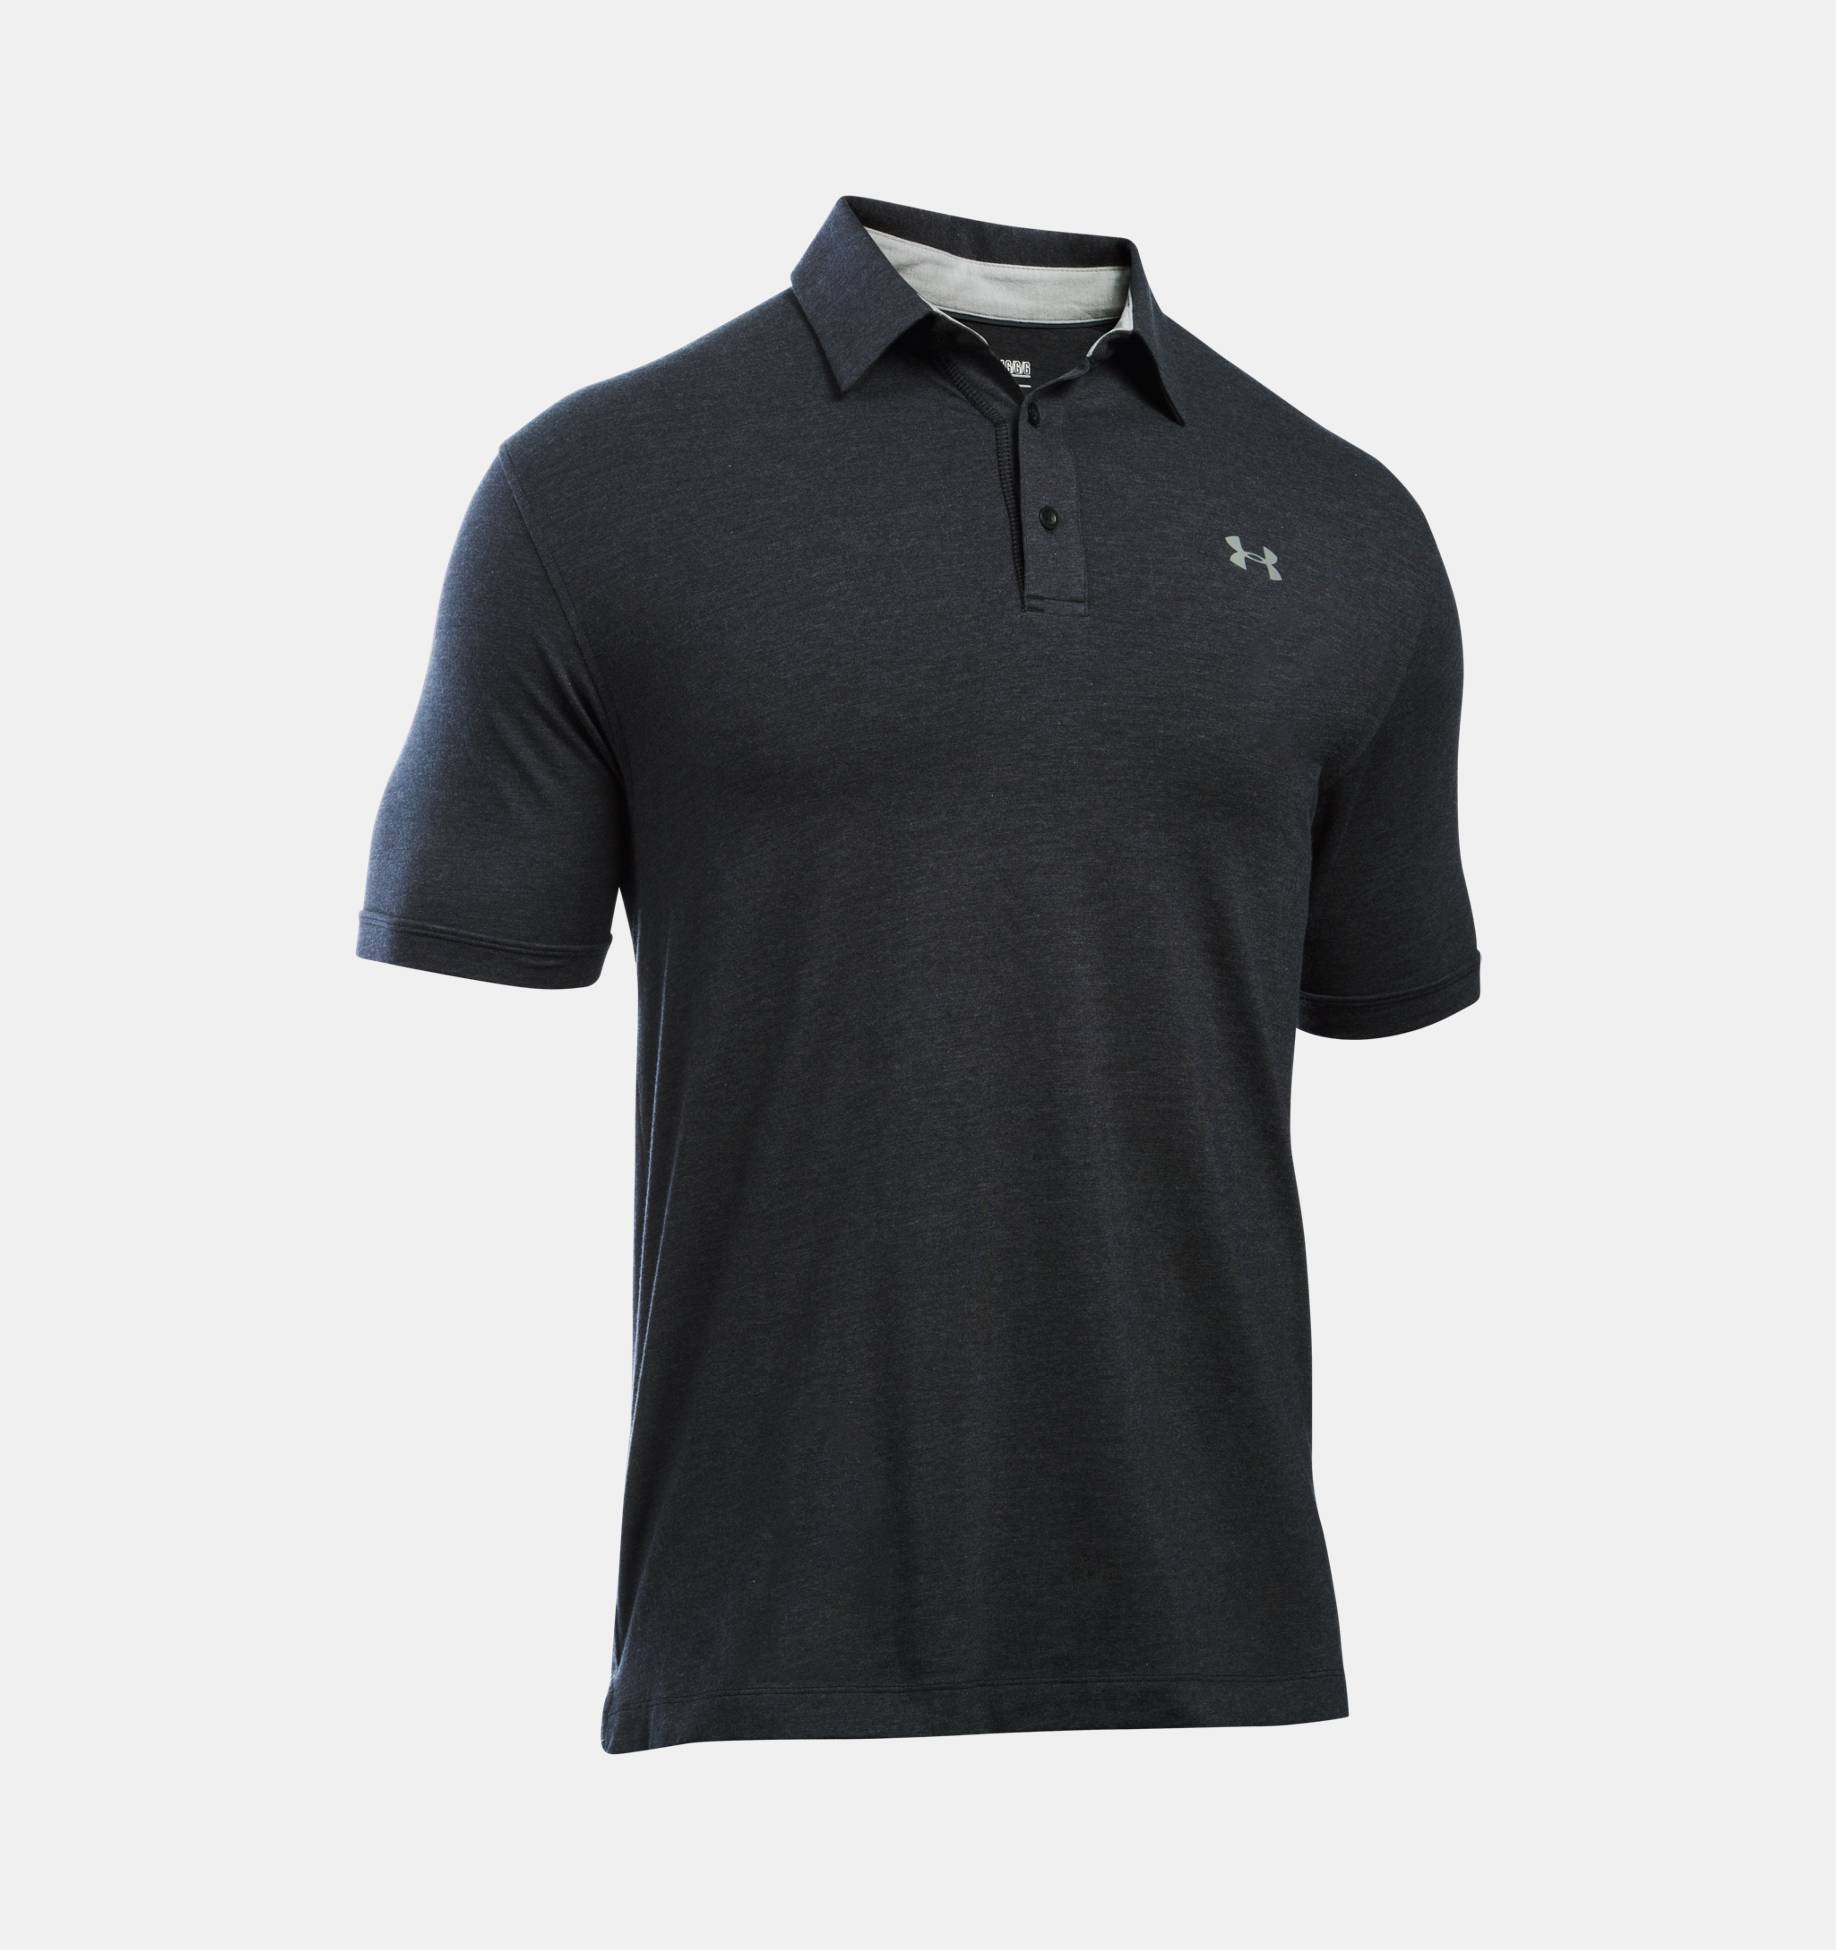 CAMISA MASCULINA CHARGED SCRAMBLE UNDER ARMOUR